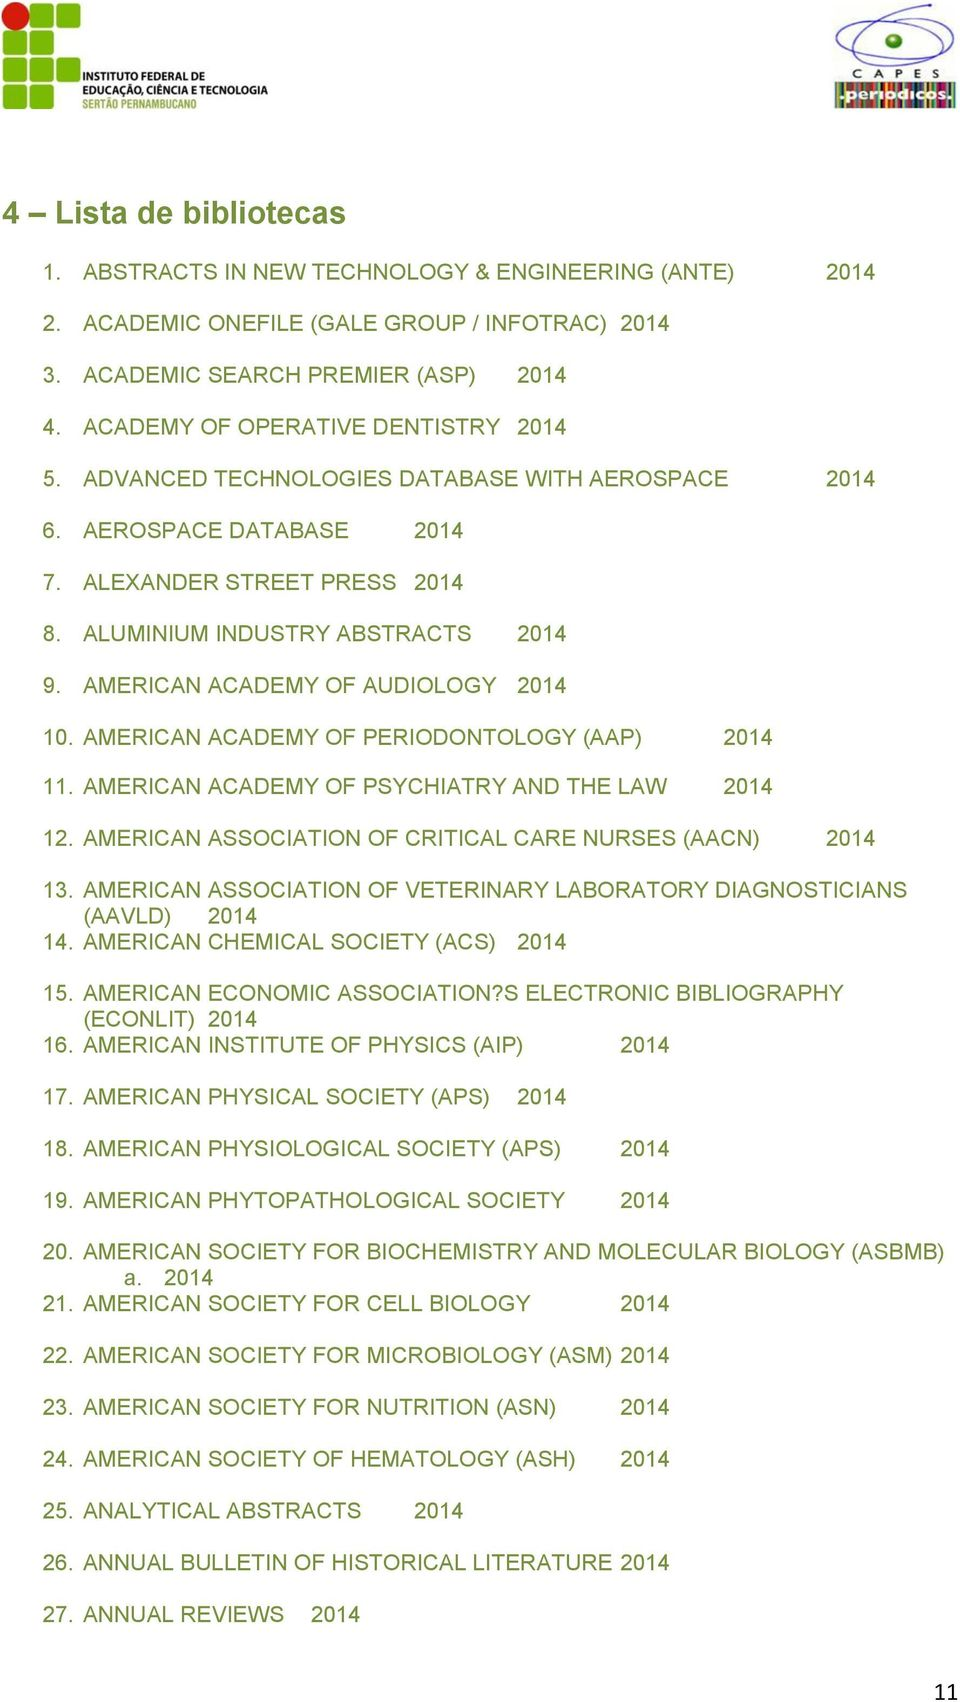 AMERICAN ACADEMY OF AUDIOLOGY 2014 10. AMERICAN ACADEMY OF PERIODONTOLOGY (AAP) 2014 11. AMERICAN ACADEMY OF PSYCHIATRY AND THE LAW 2014 12.